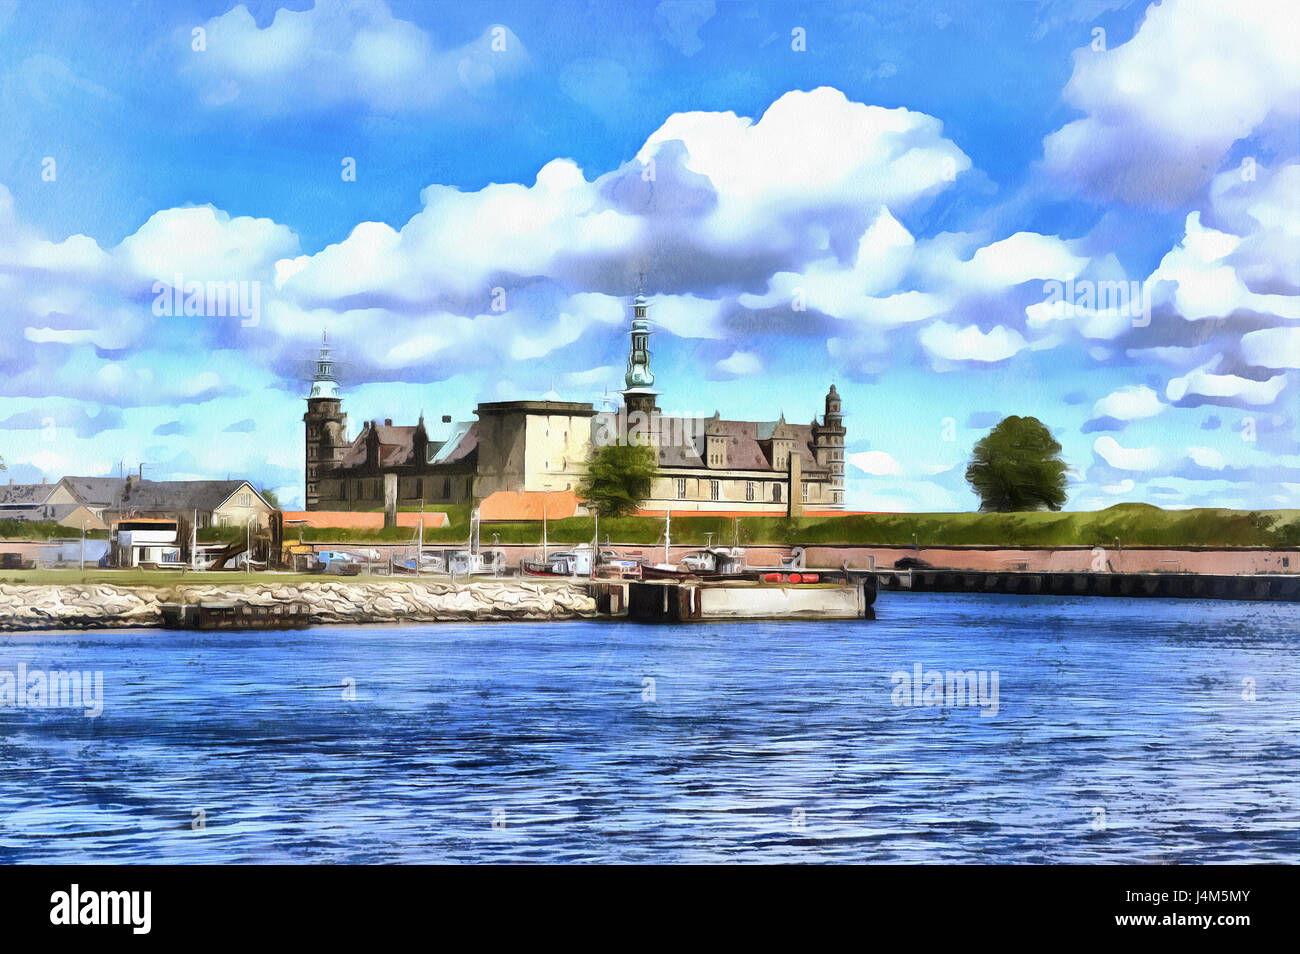 Colorful painting of Kronborg palace (Hamlets Elsinore Castle), Denmark - Stock Image